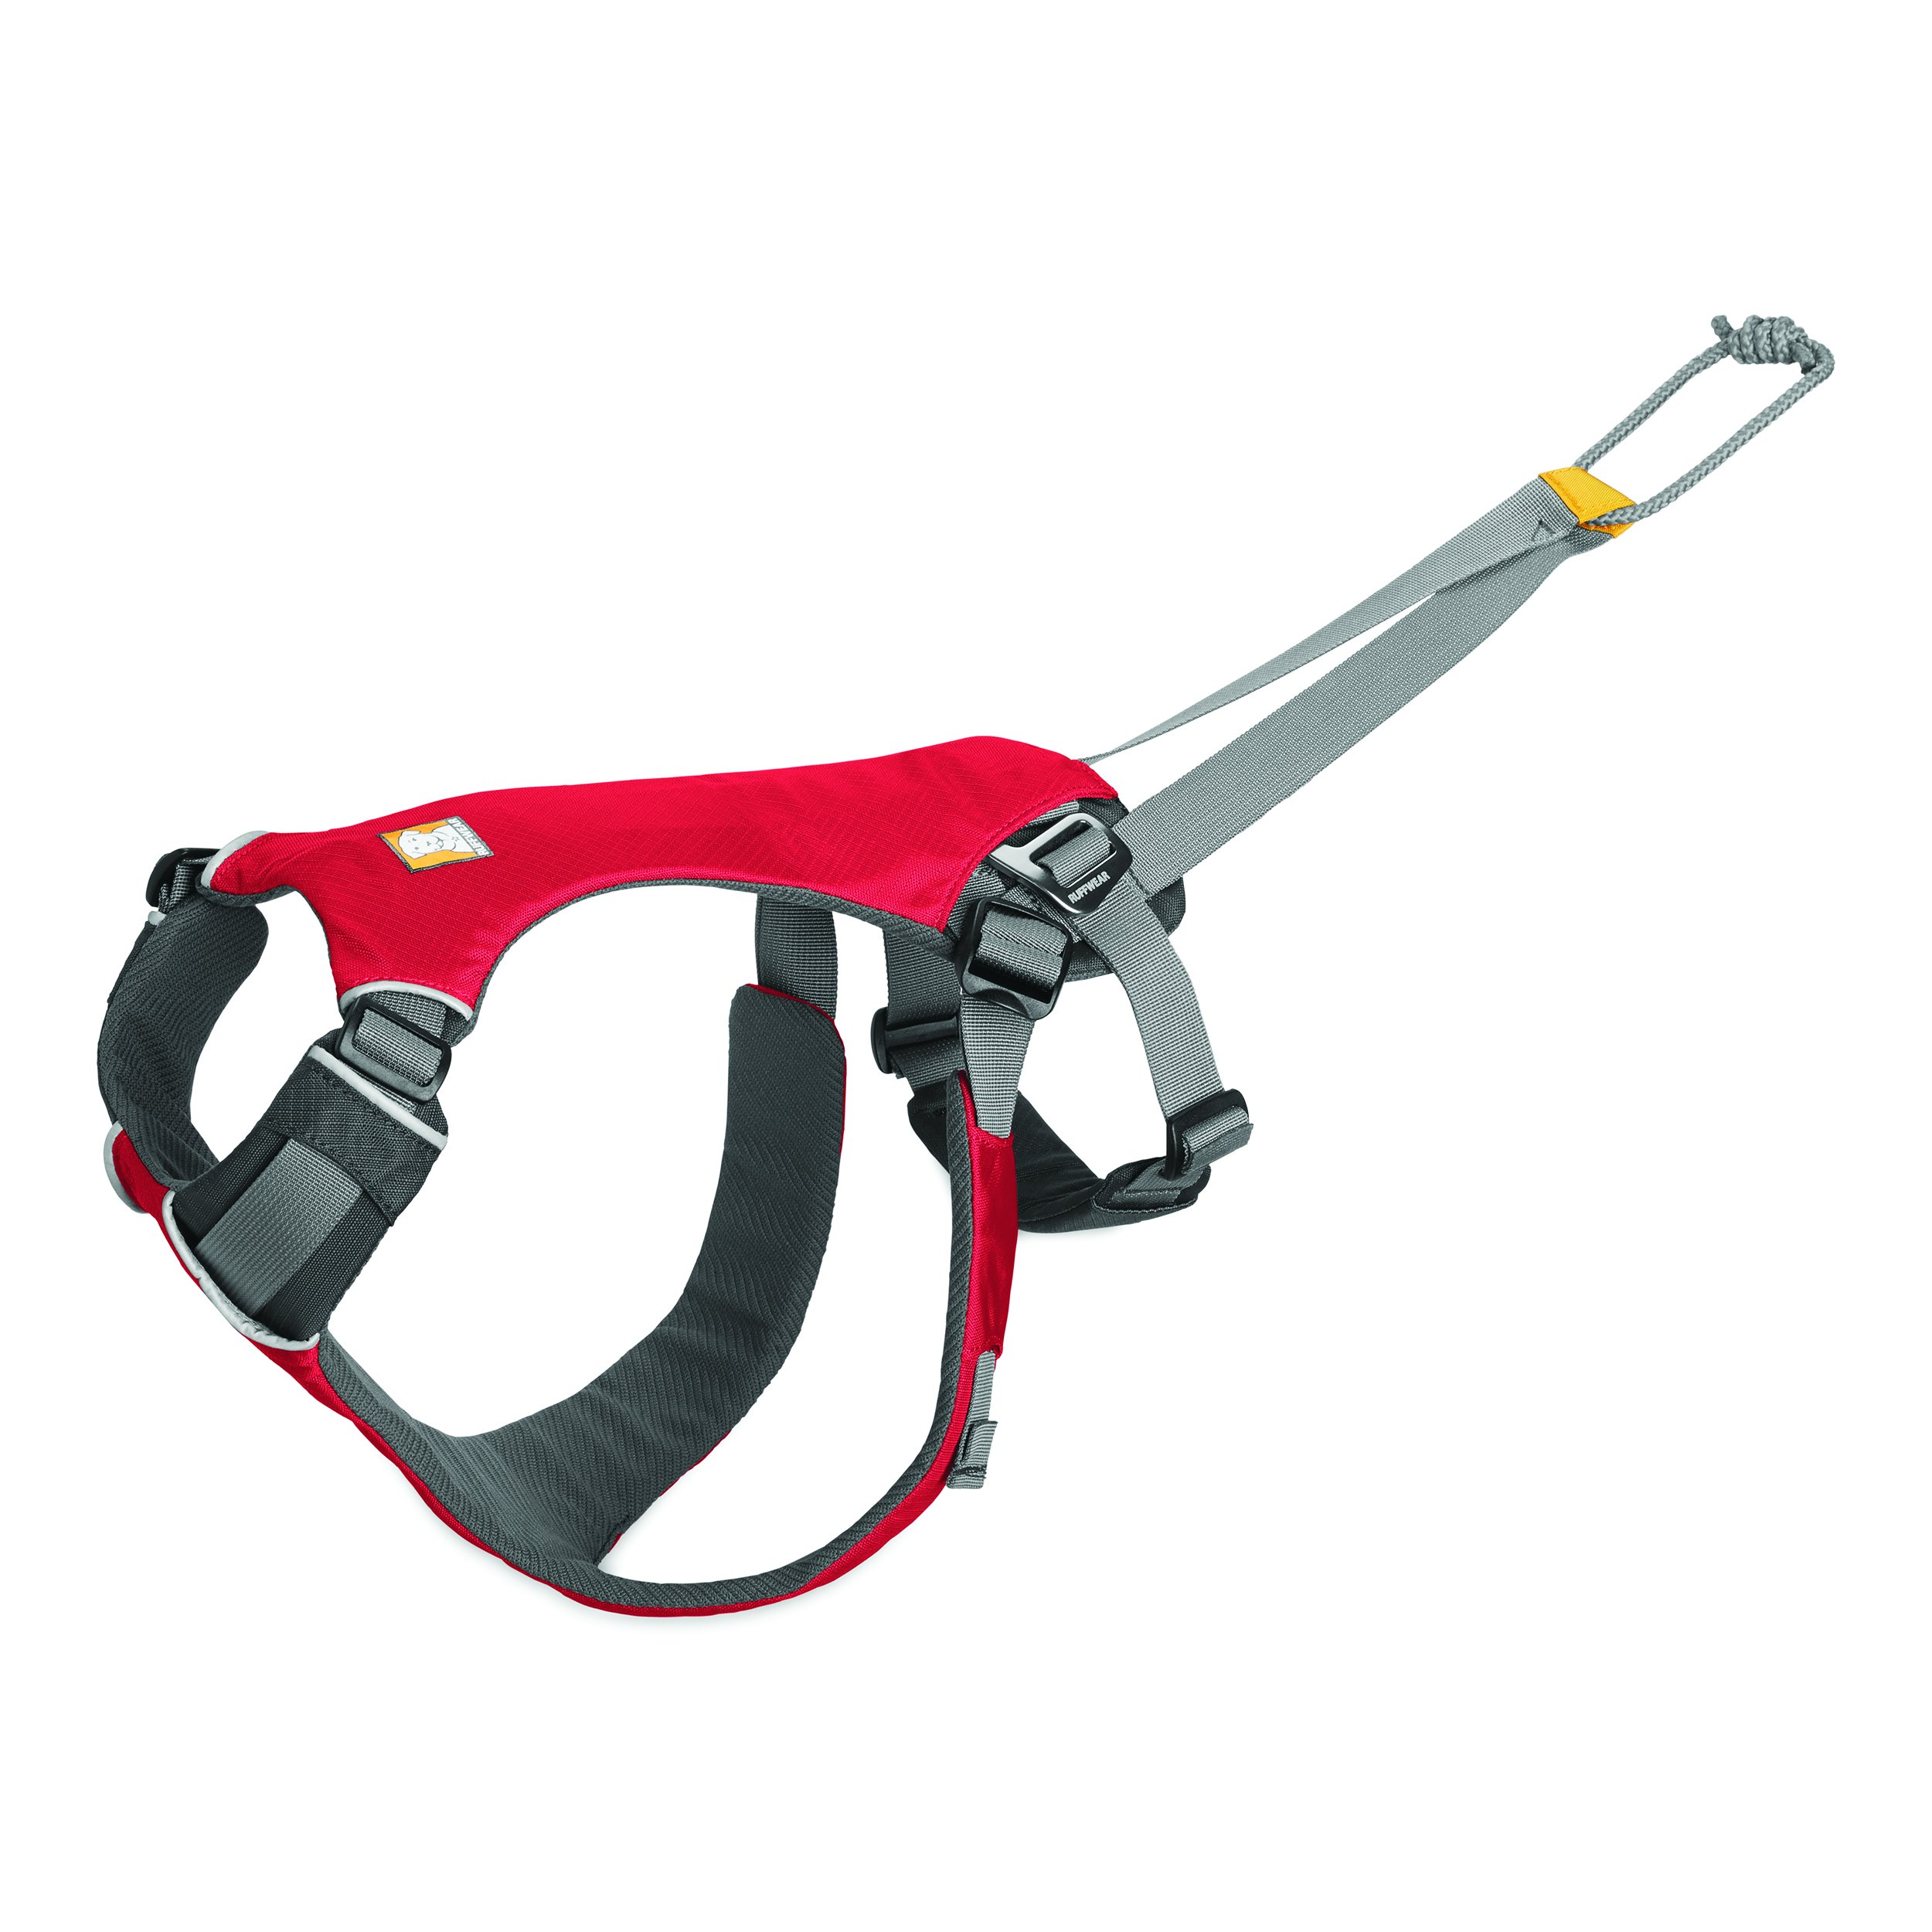 Ruffwear - Omnijore Harness, Dog-Pulling Harness, Red Currant, Large/X-Large by Ruffwear (Image #3)